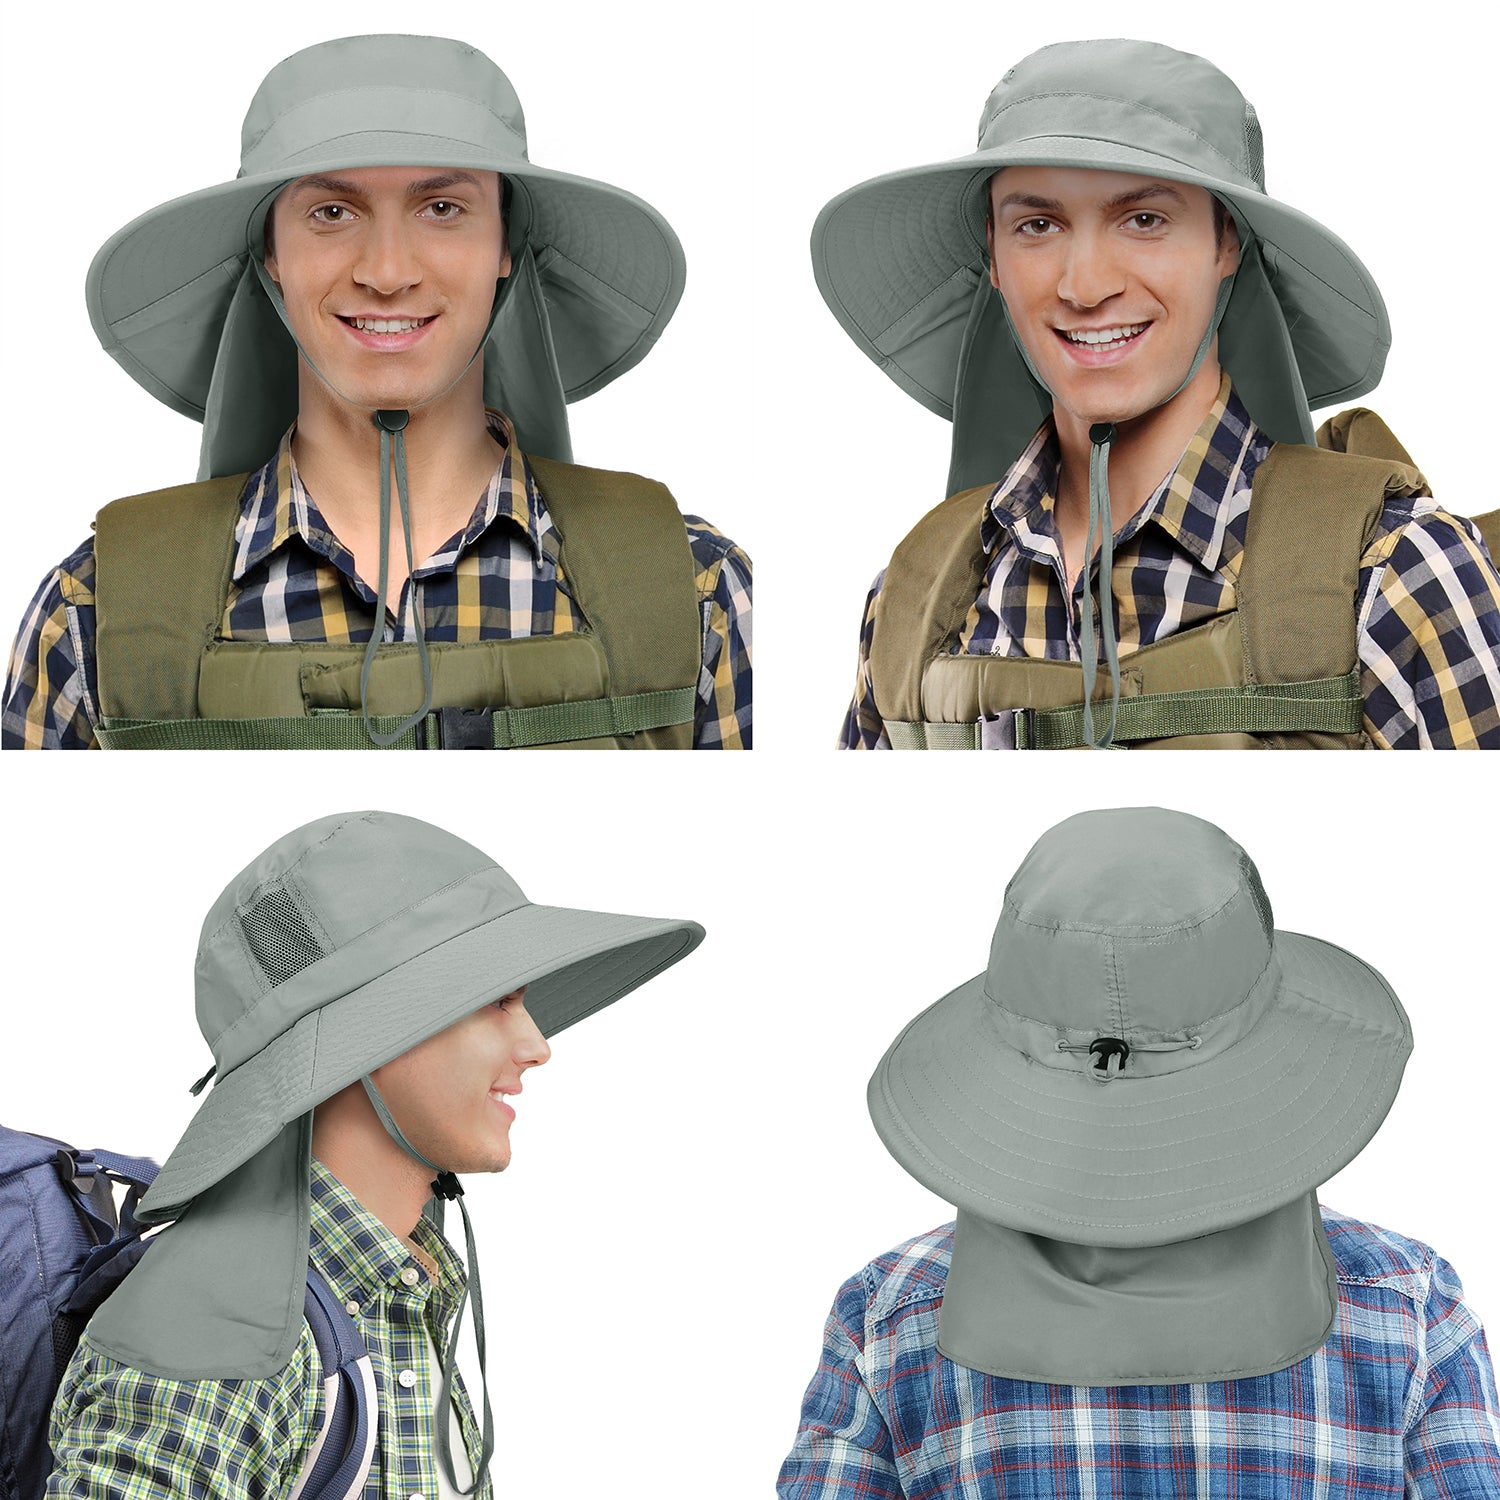 Lovely Greeting Christmas Deer New Summer Unisex Cotton Fashion Fishing Sun Bucket Hats for Kid Teens Women and Men with Customize Top Packable Fisherman Cap for Outdoor Travel